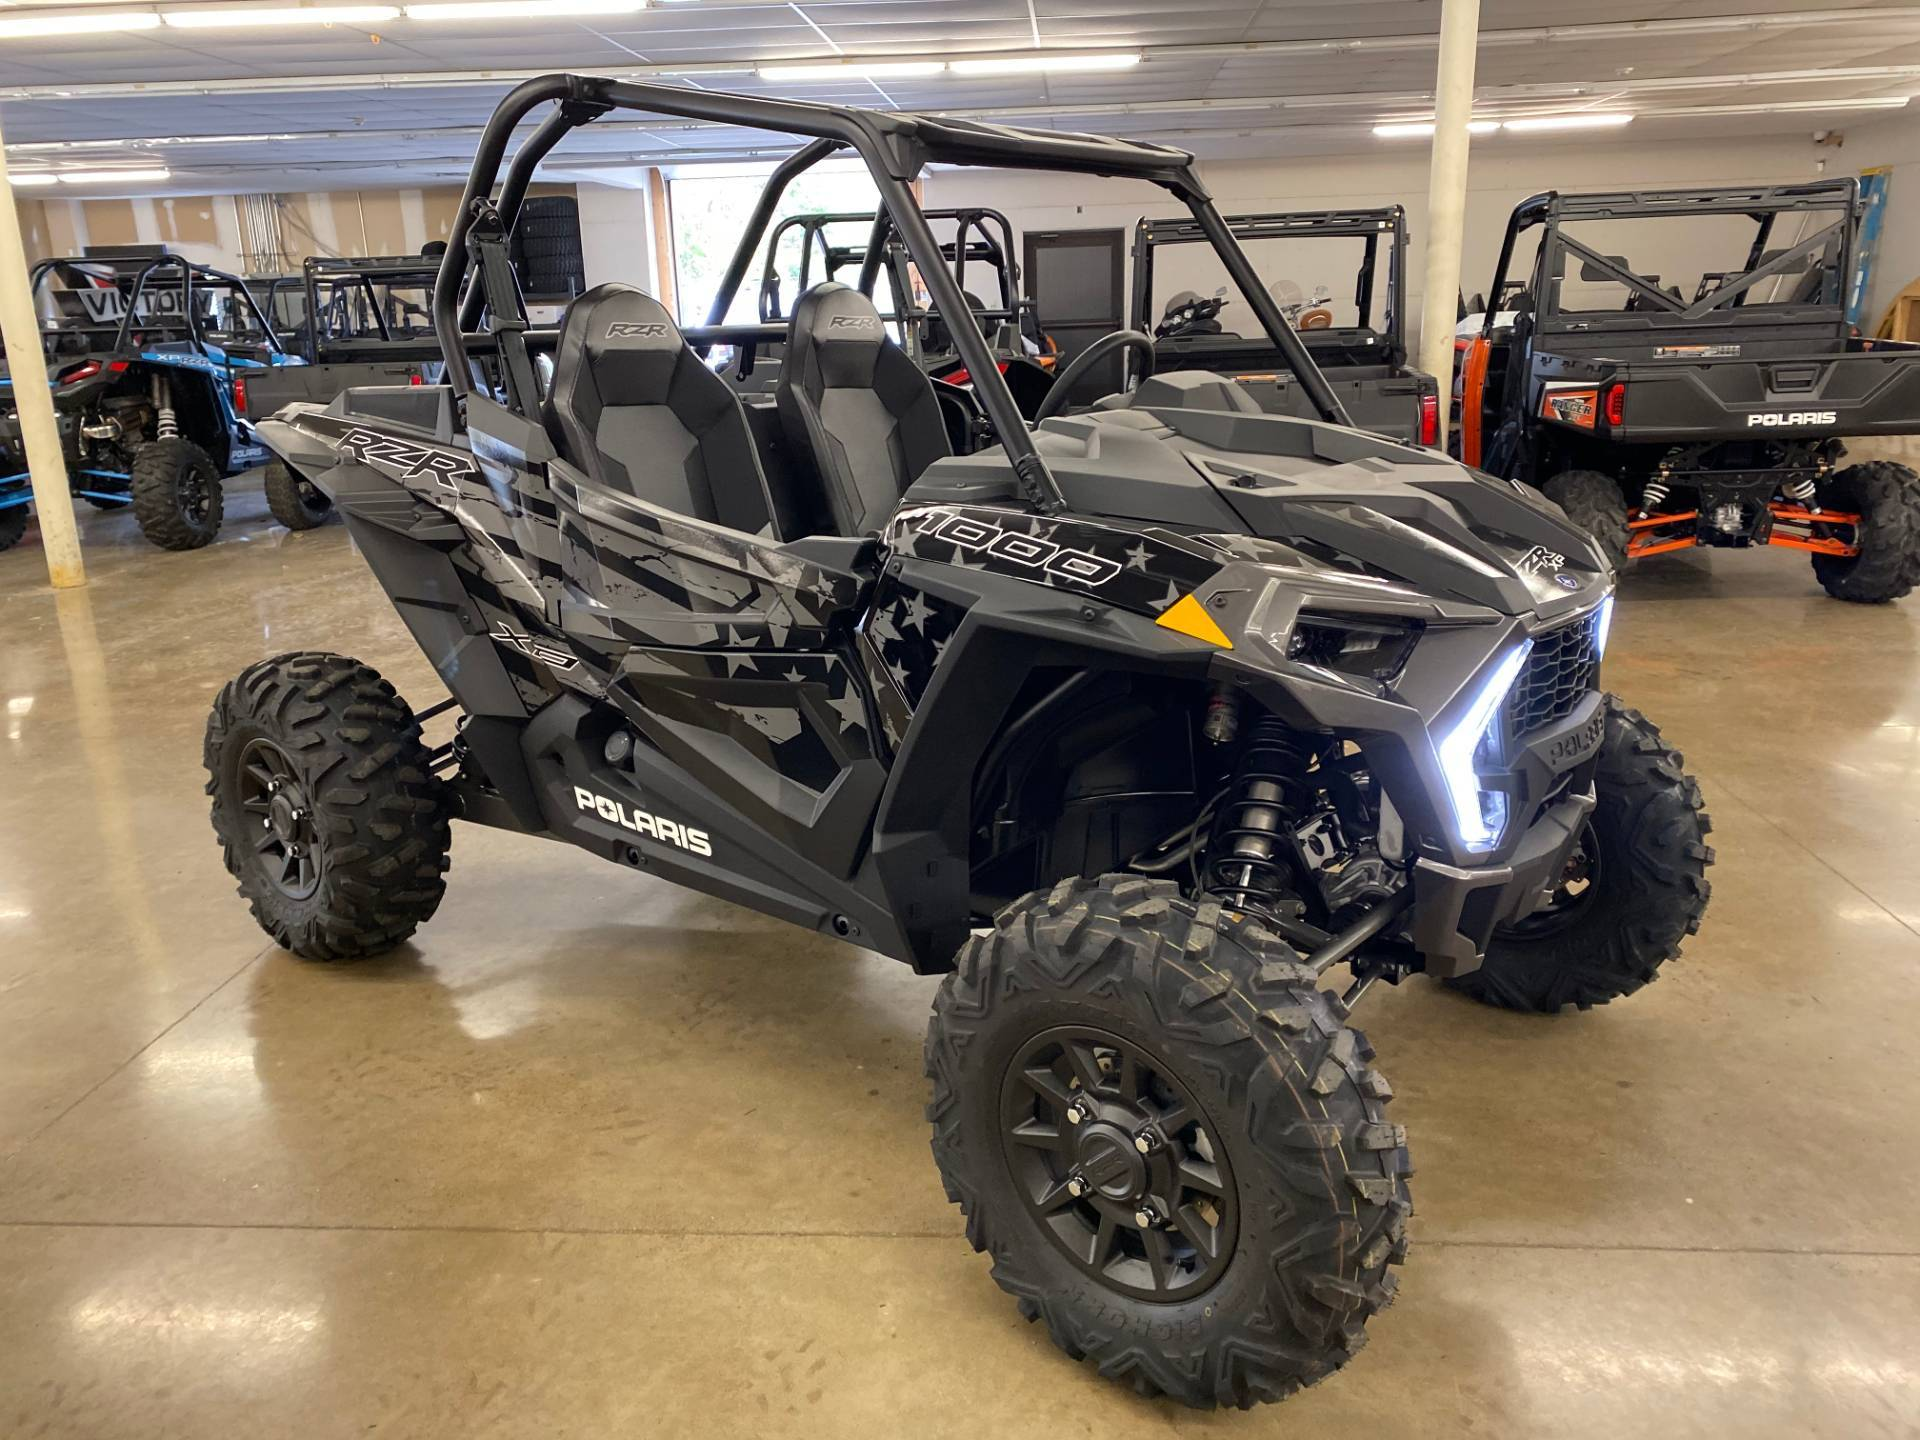 2020 Polaris RZR XP 1000 LE in Beaver Falls, Pennsylvania - Photo 7